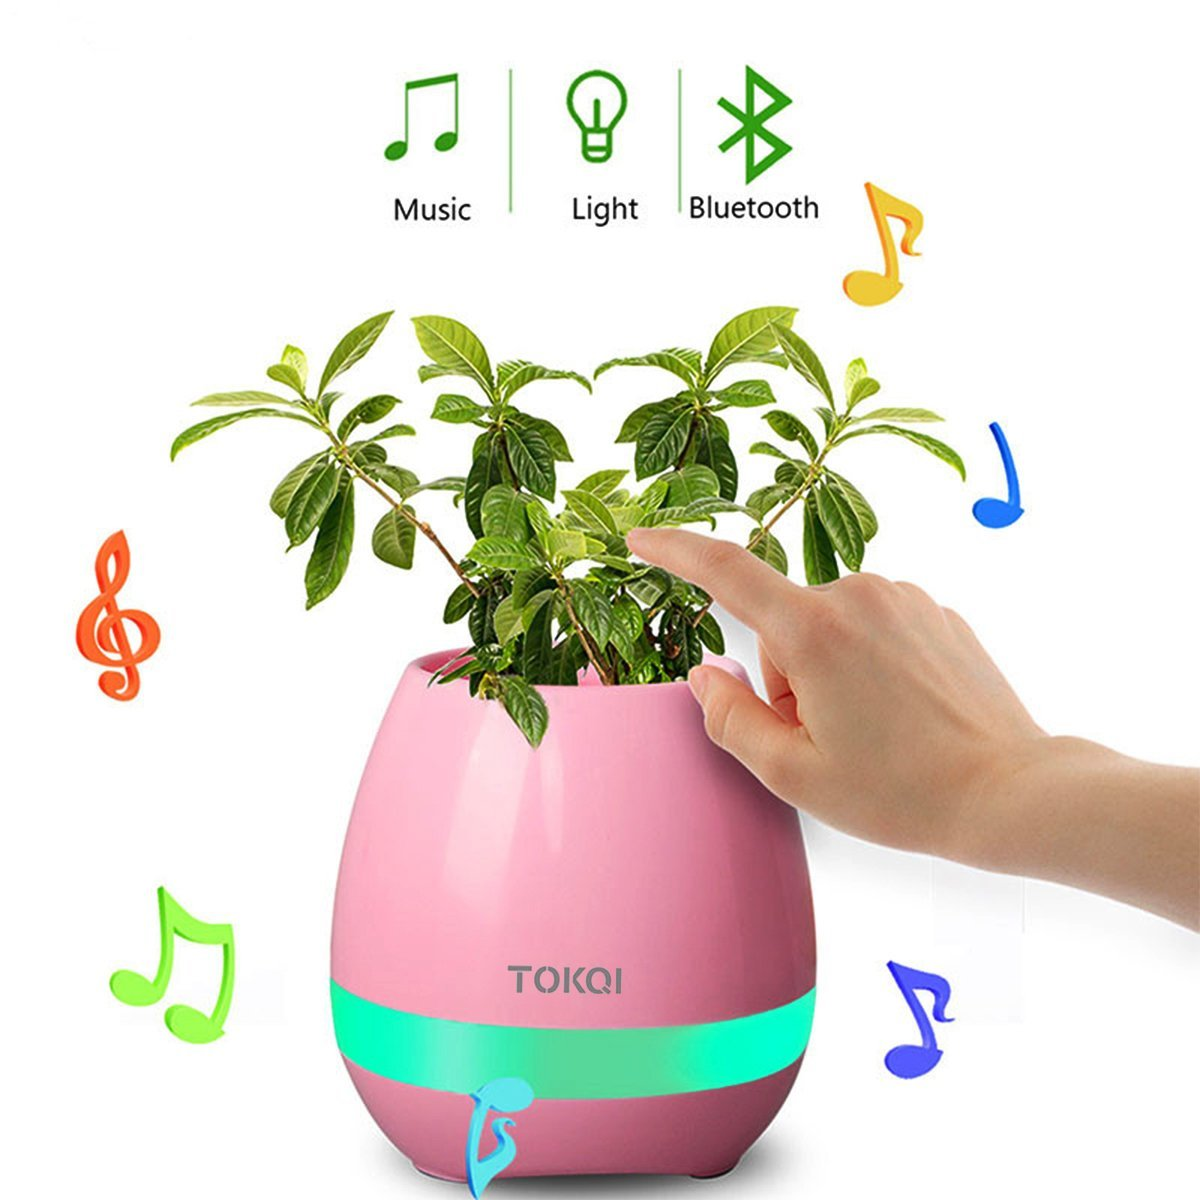 New Smart Finger Touch Wireless Bluetooth Speakers Multi-color LED Night Light MP3 Music Flowerpot Home Office Desk Decorative